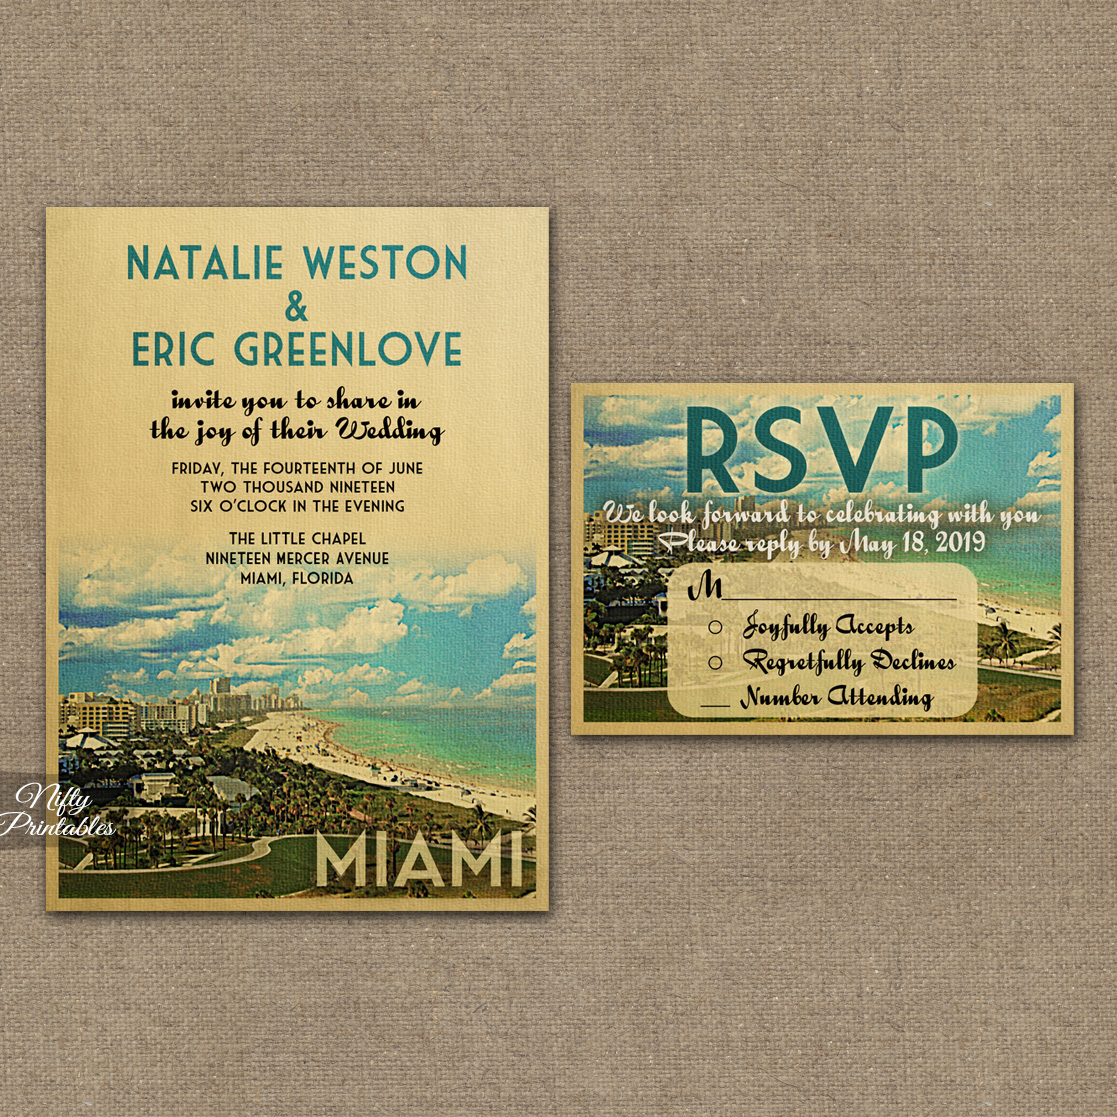 Miami Florida Wedding Invitations VTW